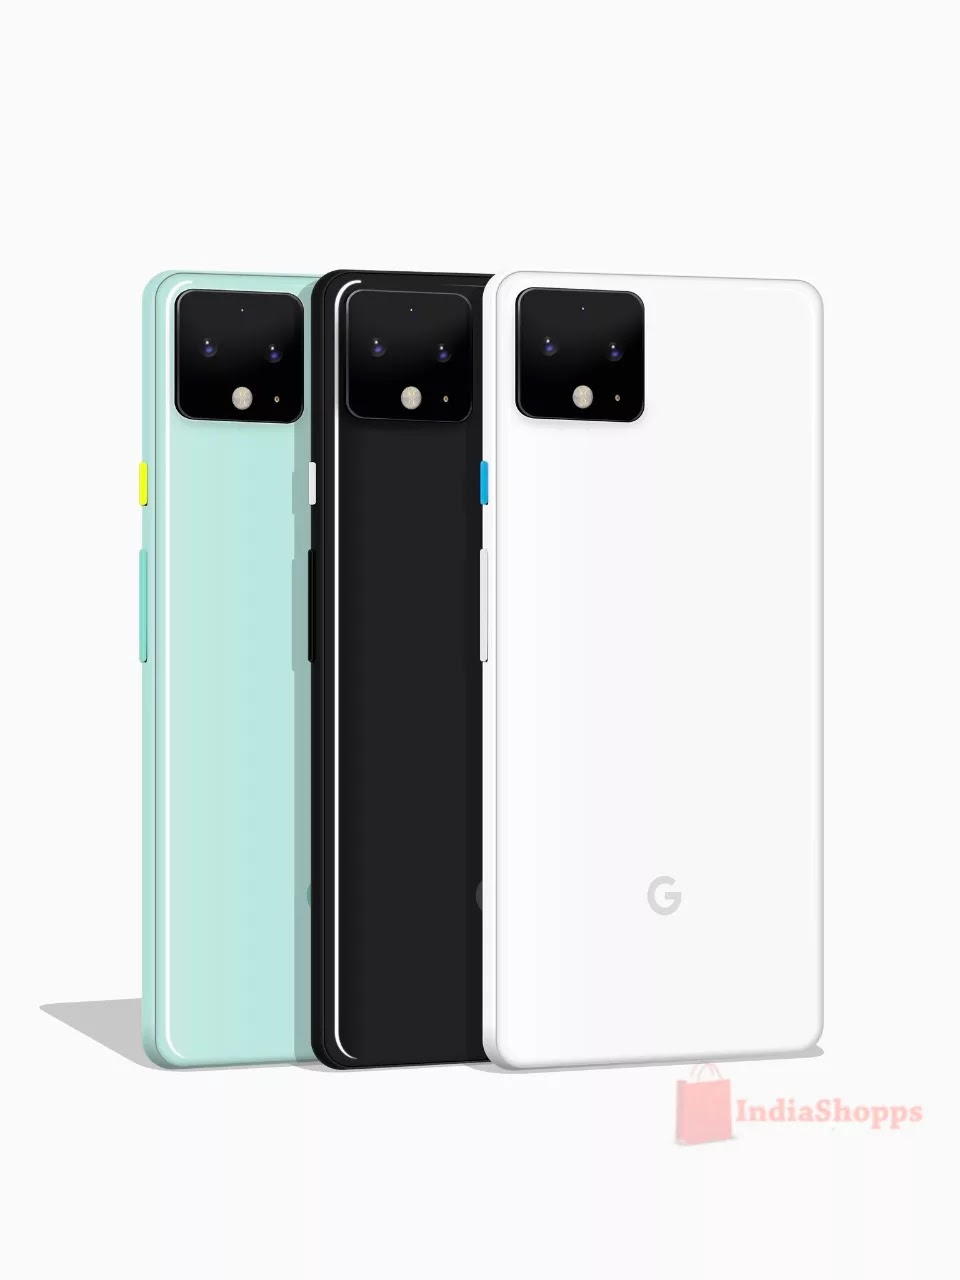 Google Pixel 4 Three Color